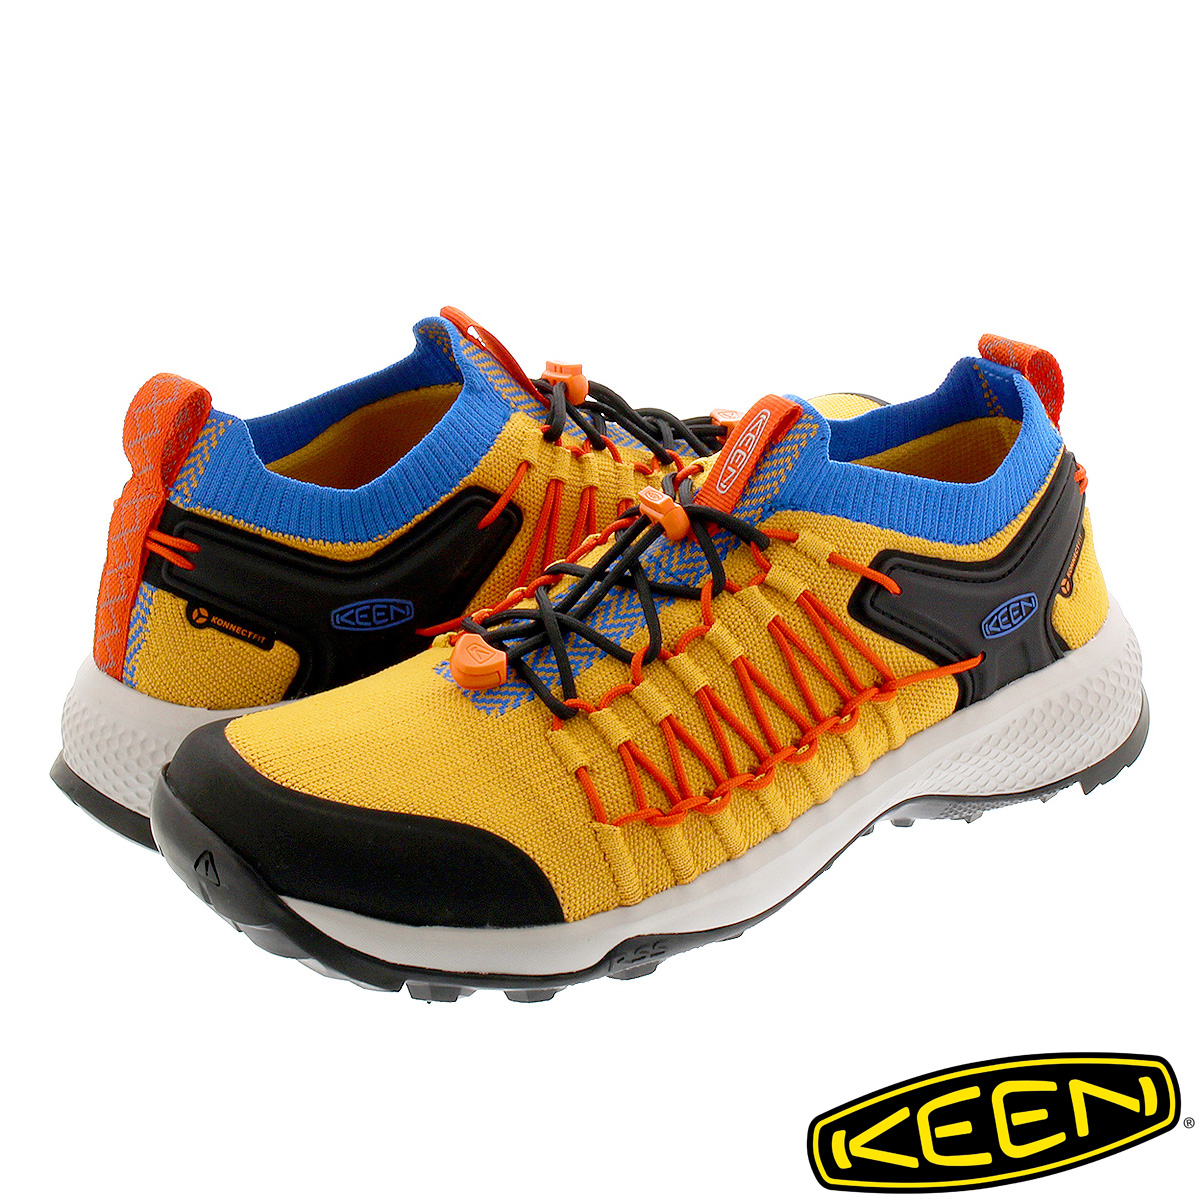 KEEN EXPLORE UNEEK キーン エクスプロール ユニーク ARTISAN GOLD/RED ORANGE 1021798